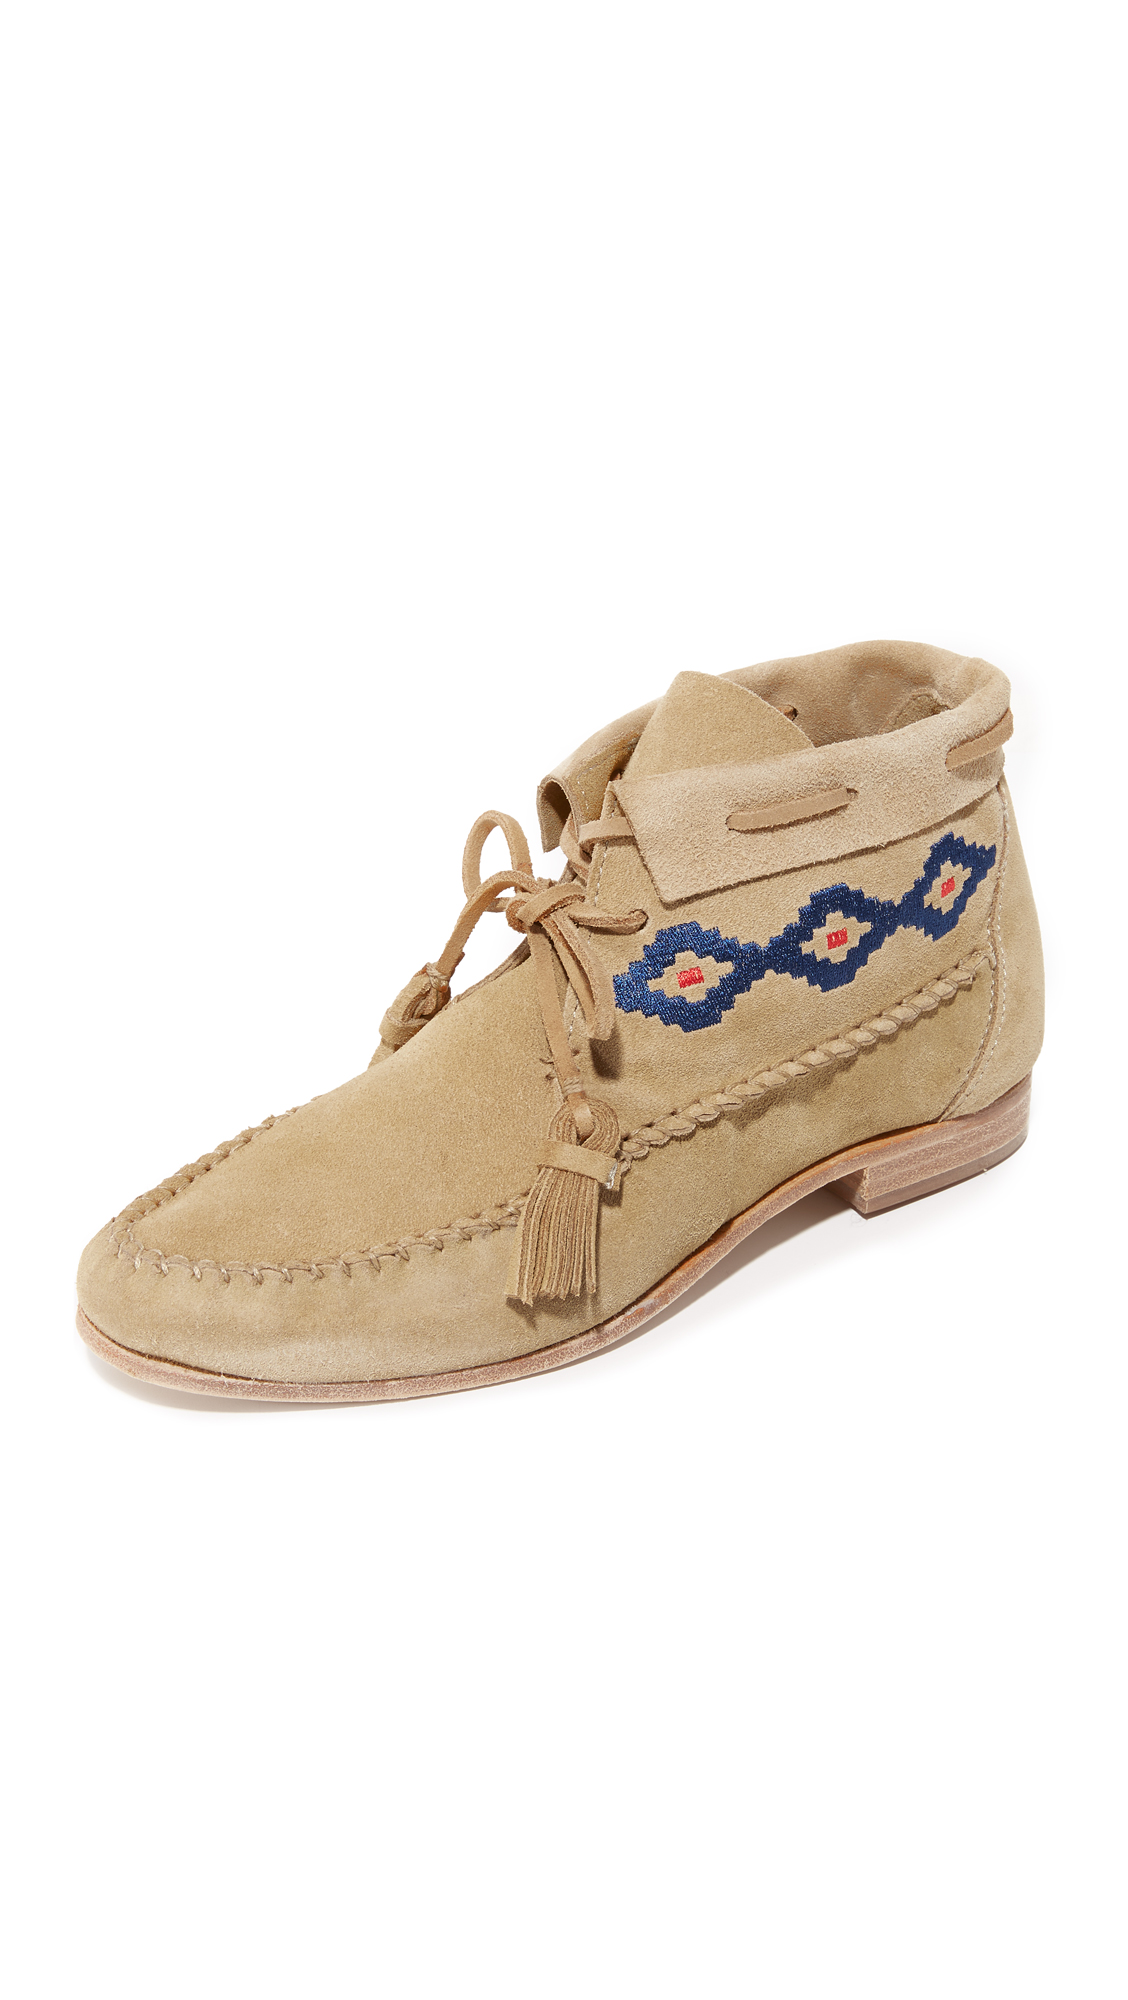 Soludos Moccasin Booties - Stone